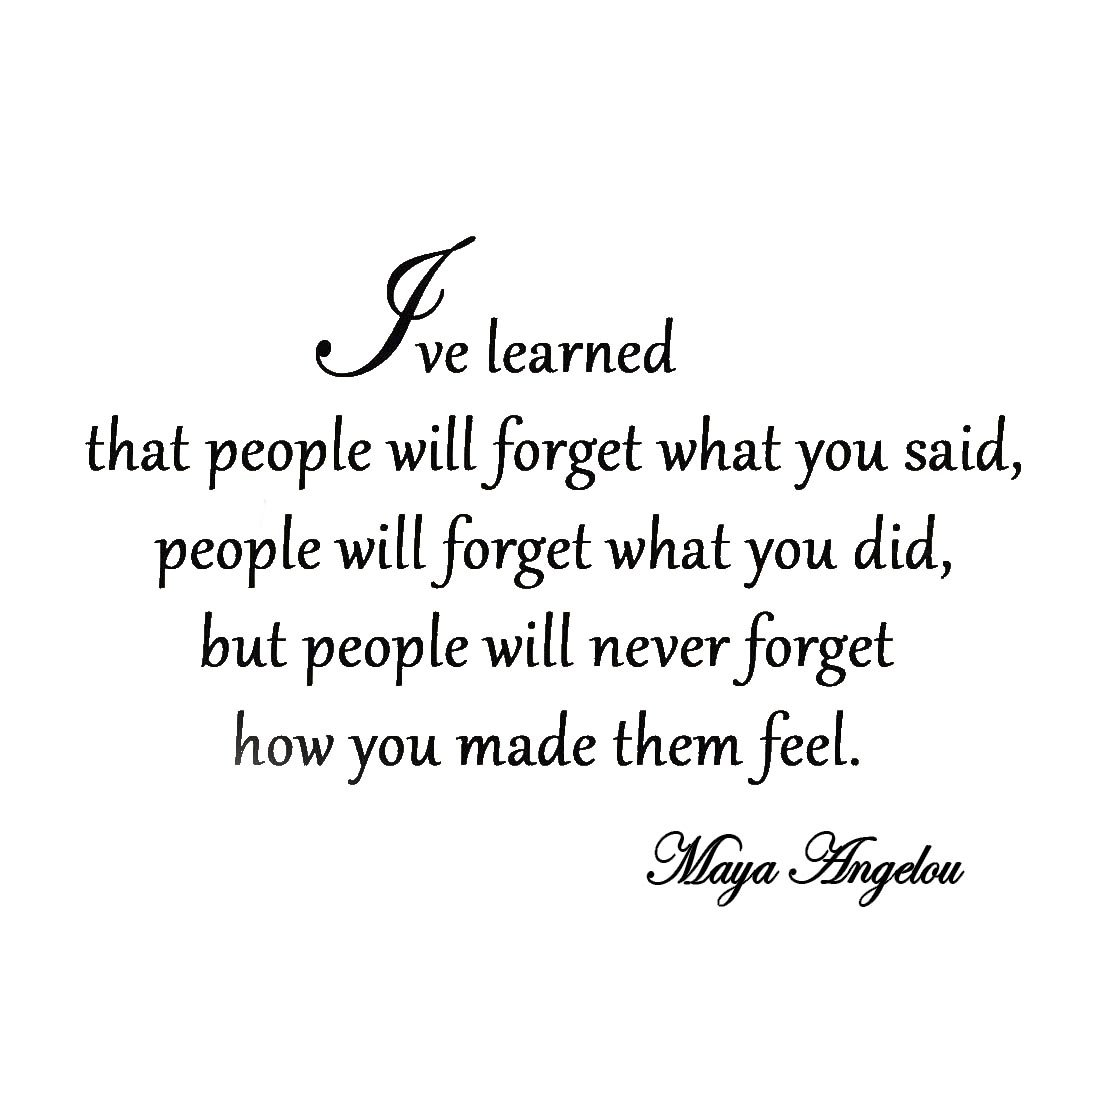 Ive learned that people will forget what youve said maya angelou ive learned that people will forget what youve said maya angelou vinyl wall art quote decal lettering other products amazon kristyandbryce Images